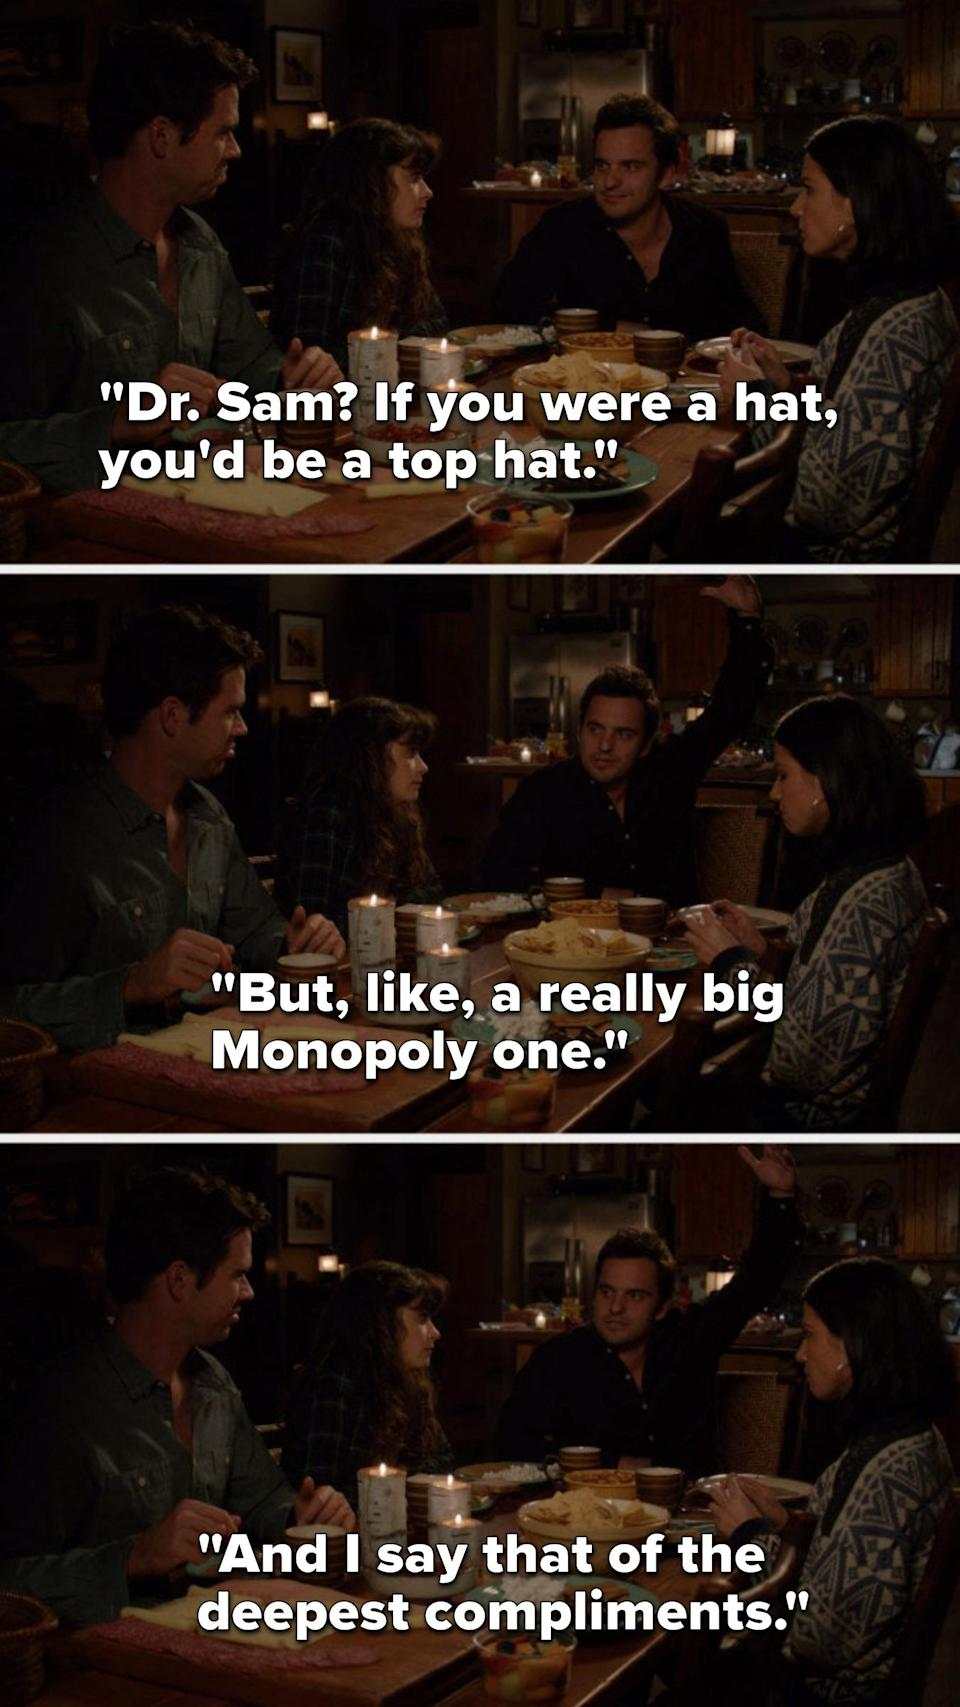 Nick says, Doctor Sam, if you were a hat, you'd be a top hat, but like a really big Monopoly one, and I say that of the deepest compliments